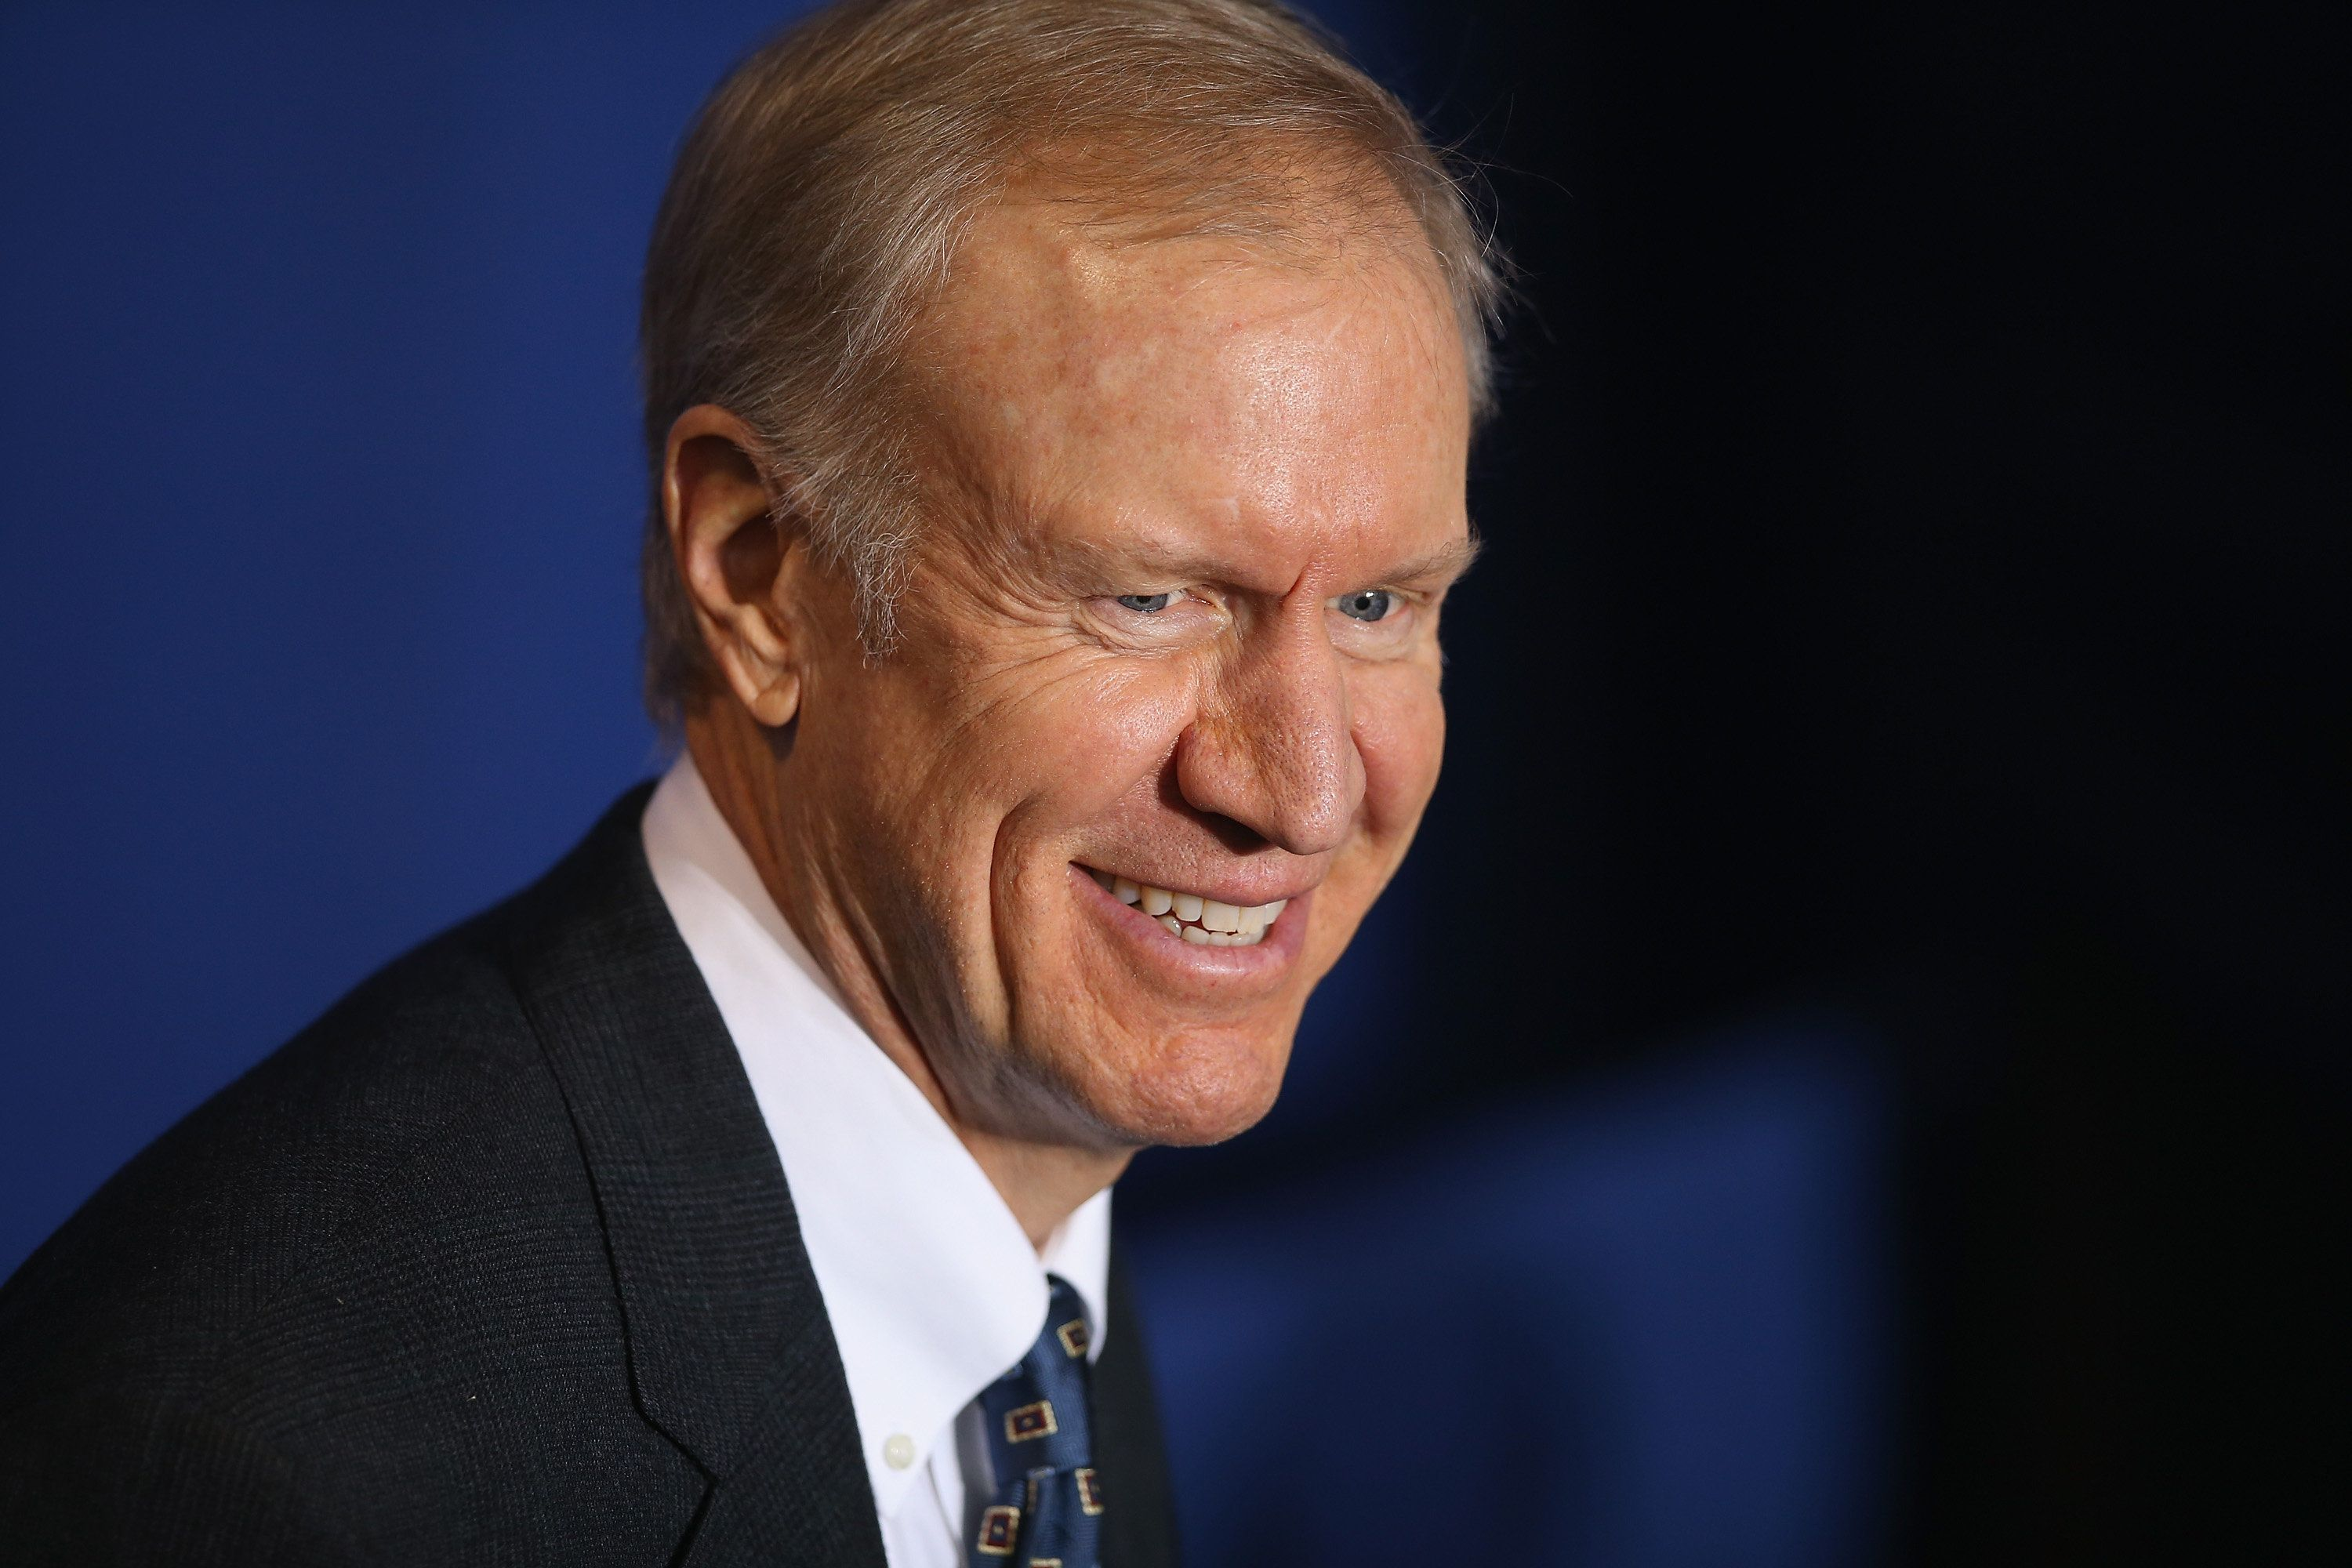 Illinois governor Bruce Rauner signed both stopgap spending bills, which will fund the state government through the November